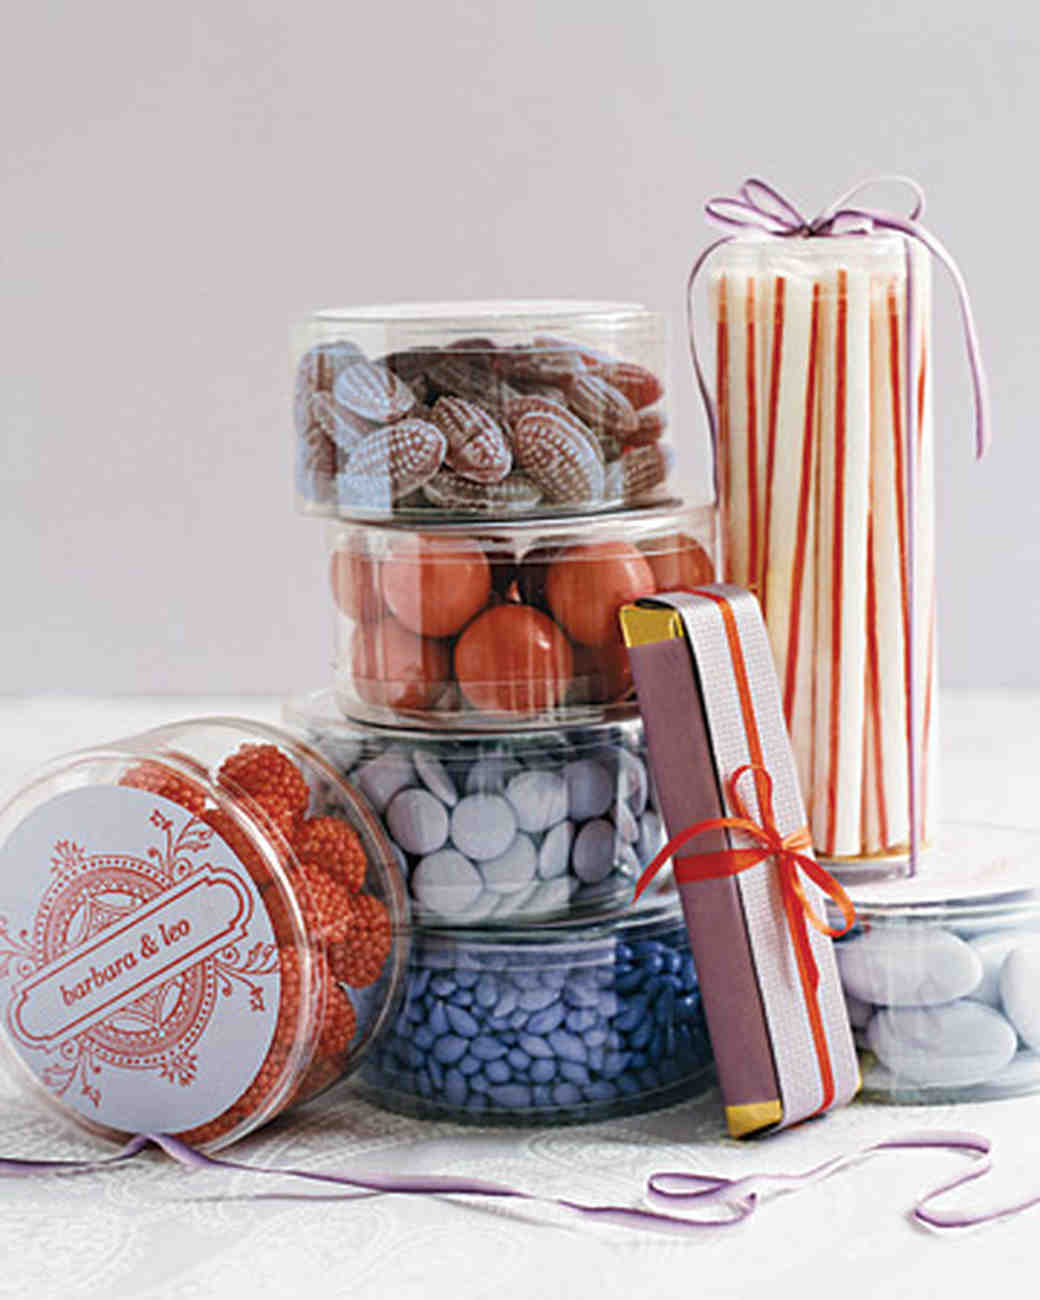 mwa104158_fal08_candies.jpg